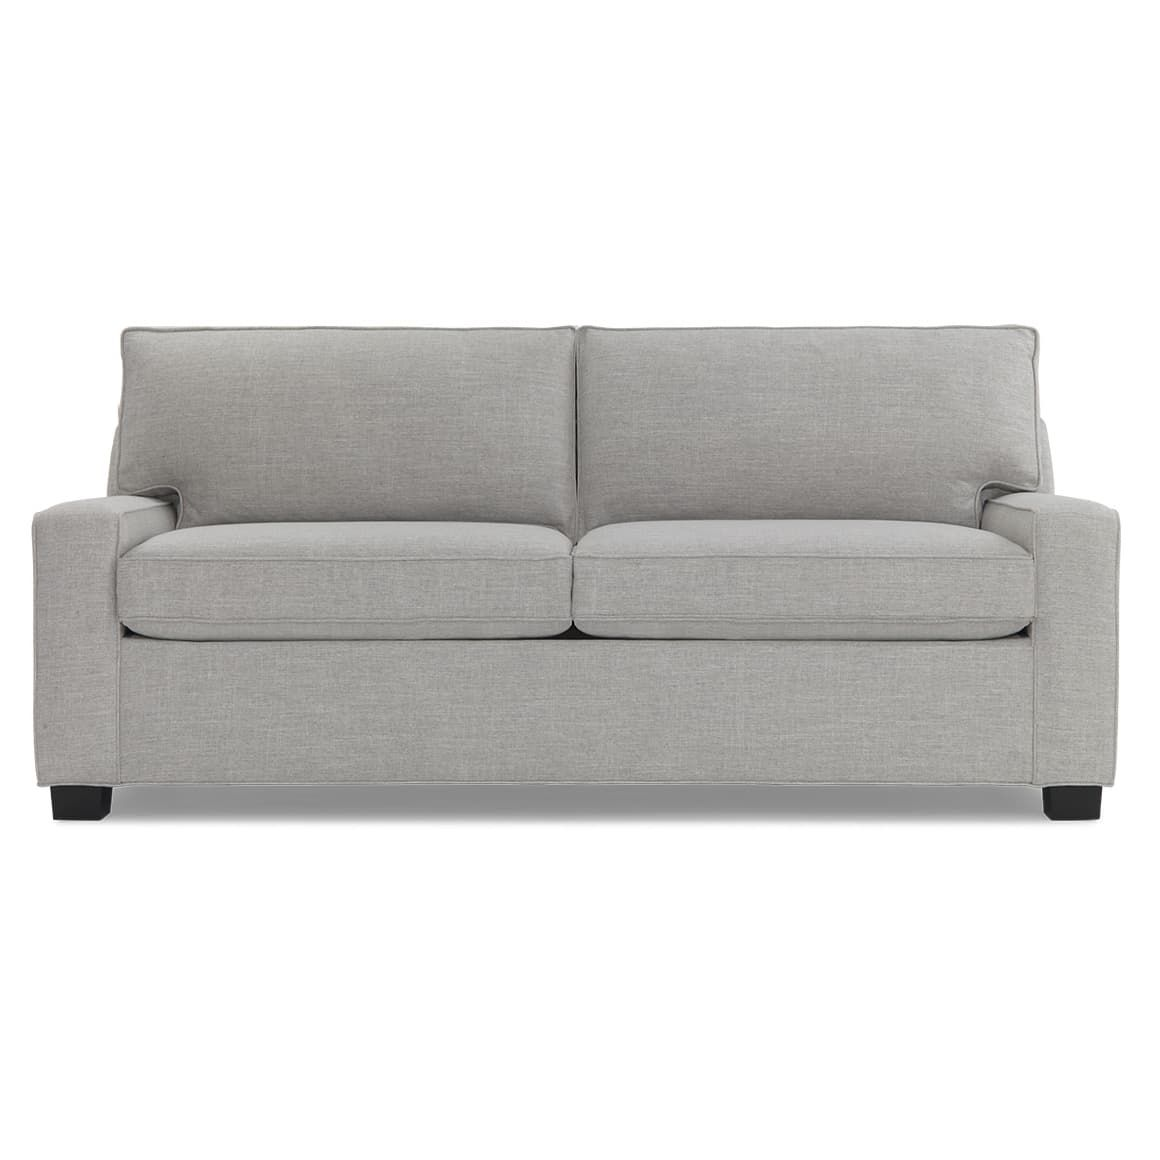 The Best Sleeper Sofas And Sofa Beds Best Sleeper Sofa Most Comfortable Sleeper Sofa Sleeper Sofa Comfortable